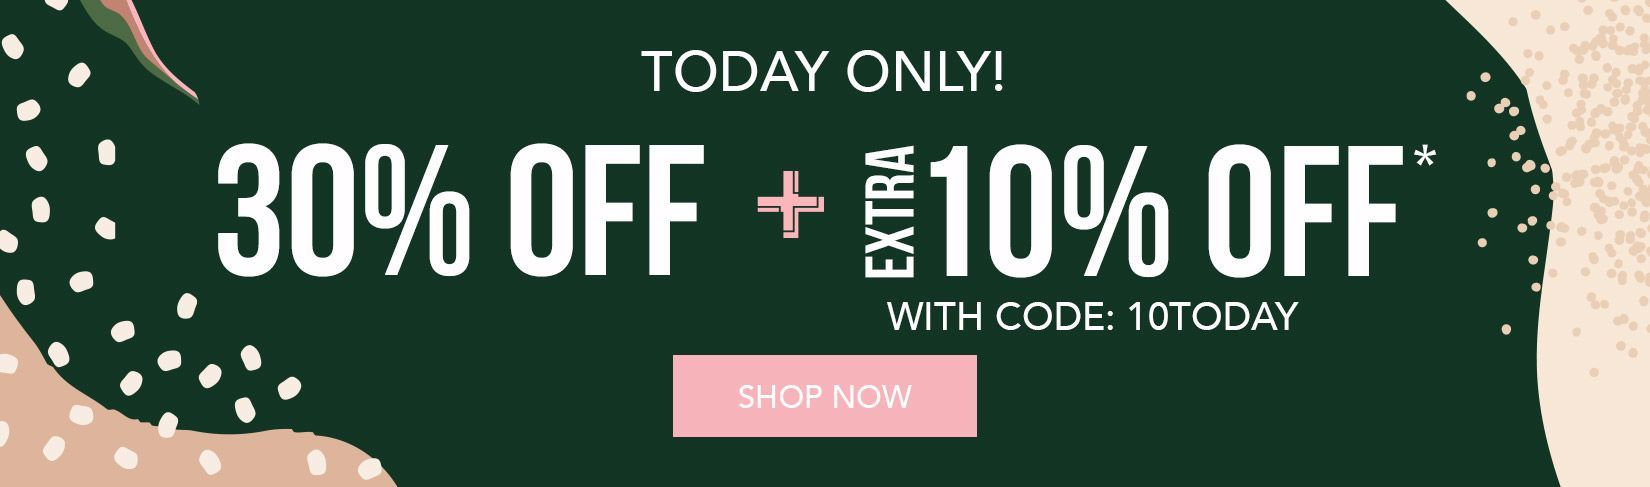 Today Only! | 30% off + Extra 10% off* with code: 10TODAY (Shop Now)